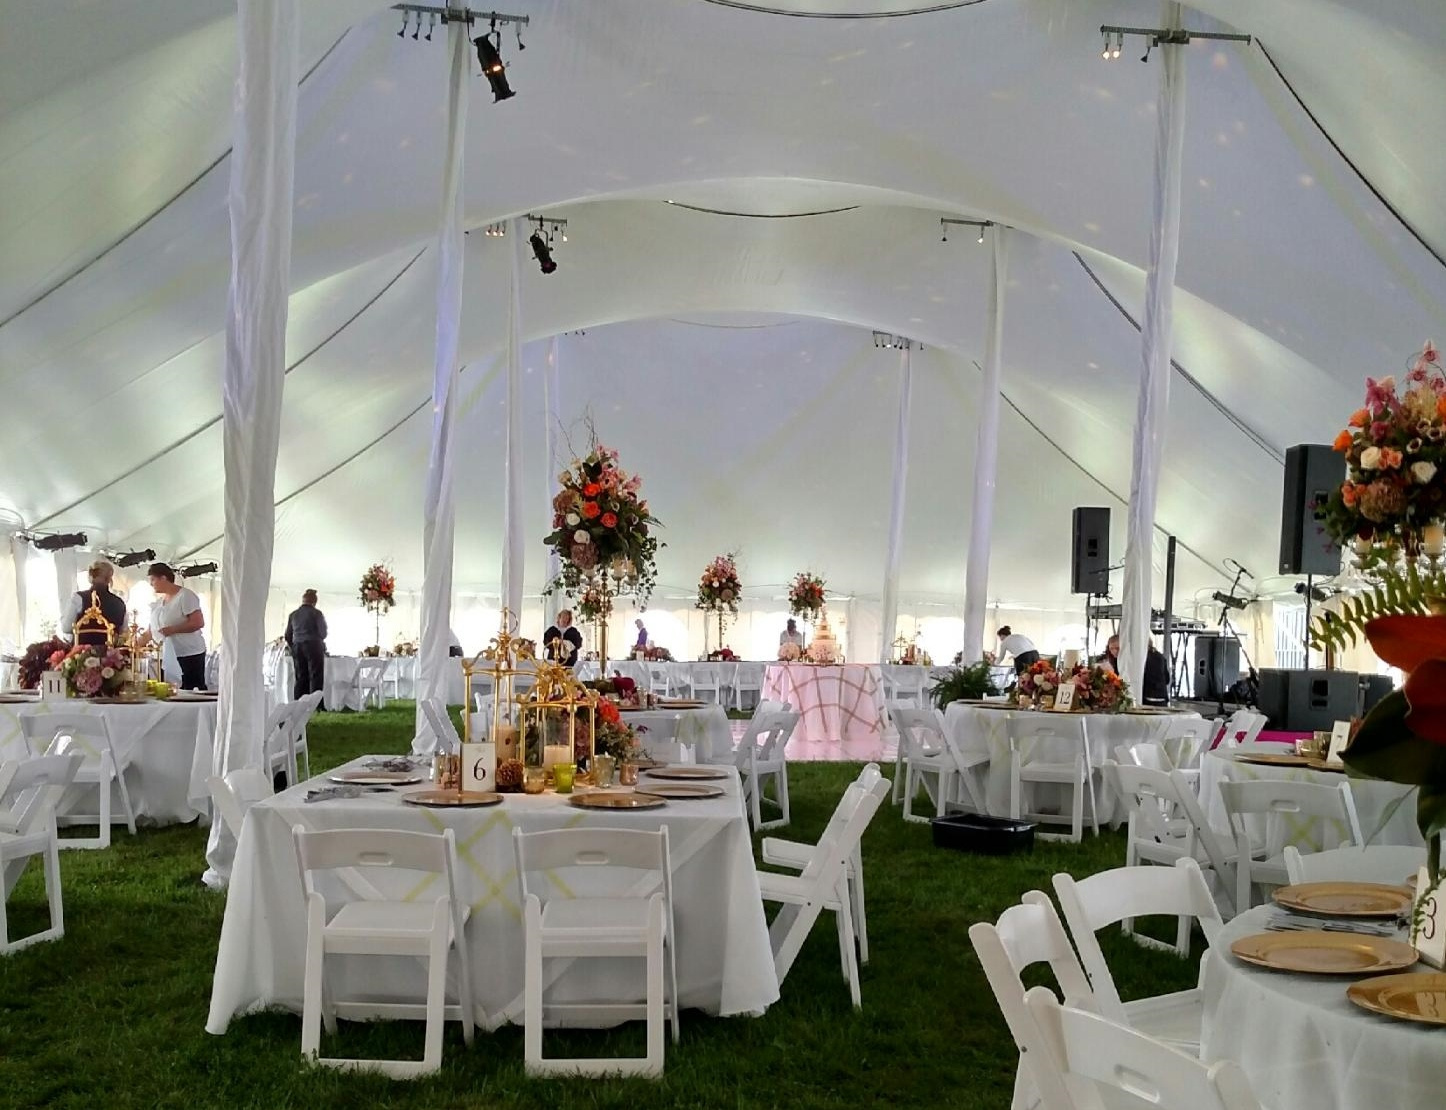 Square And Round Tables Under A Twin Peak Tent For A Wedding The - Wedding table tents